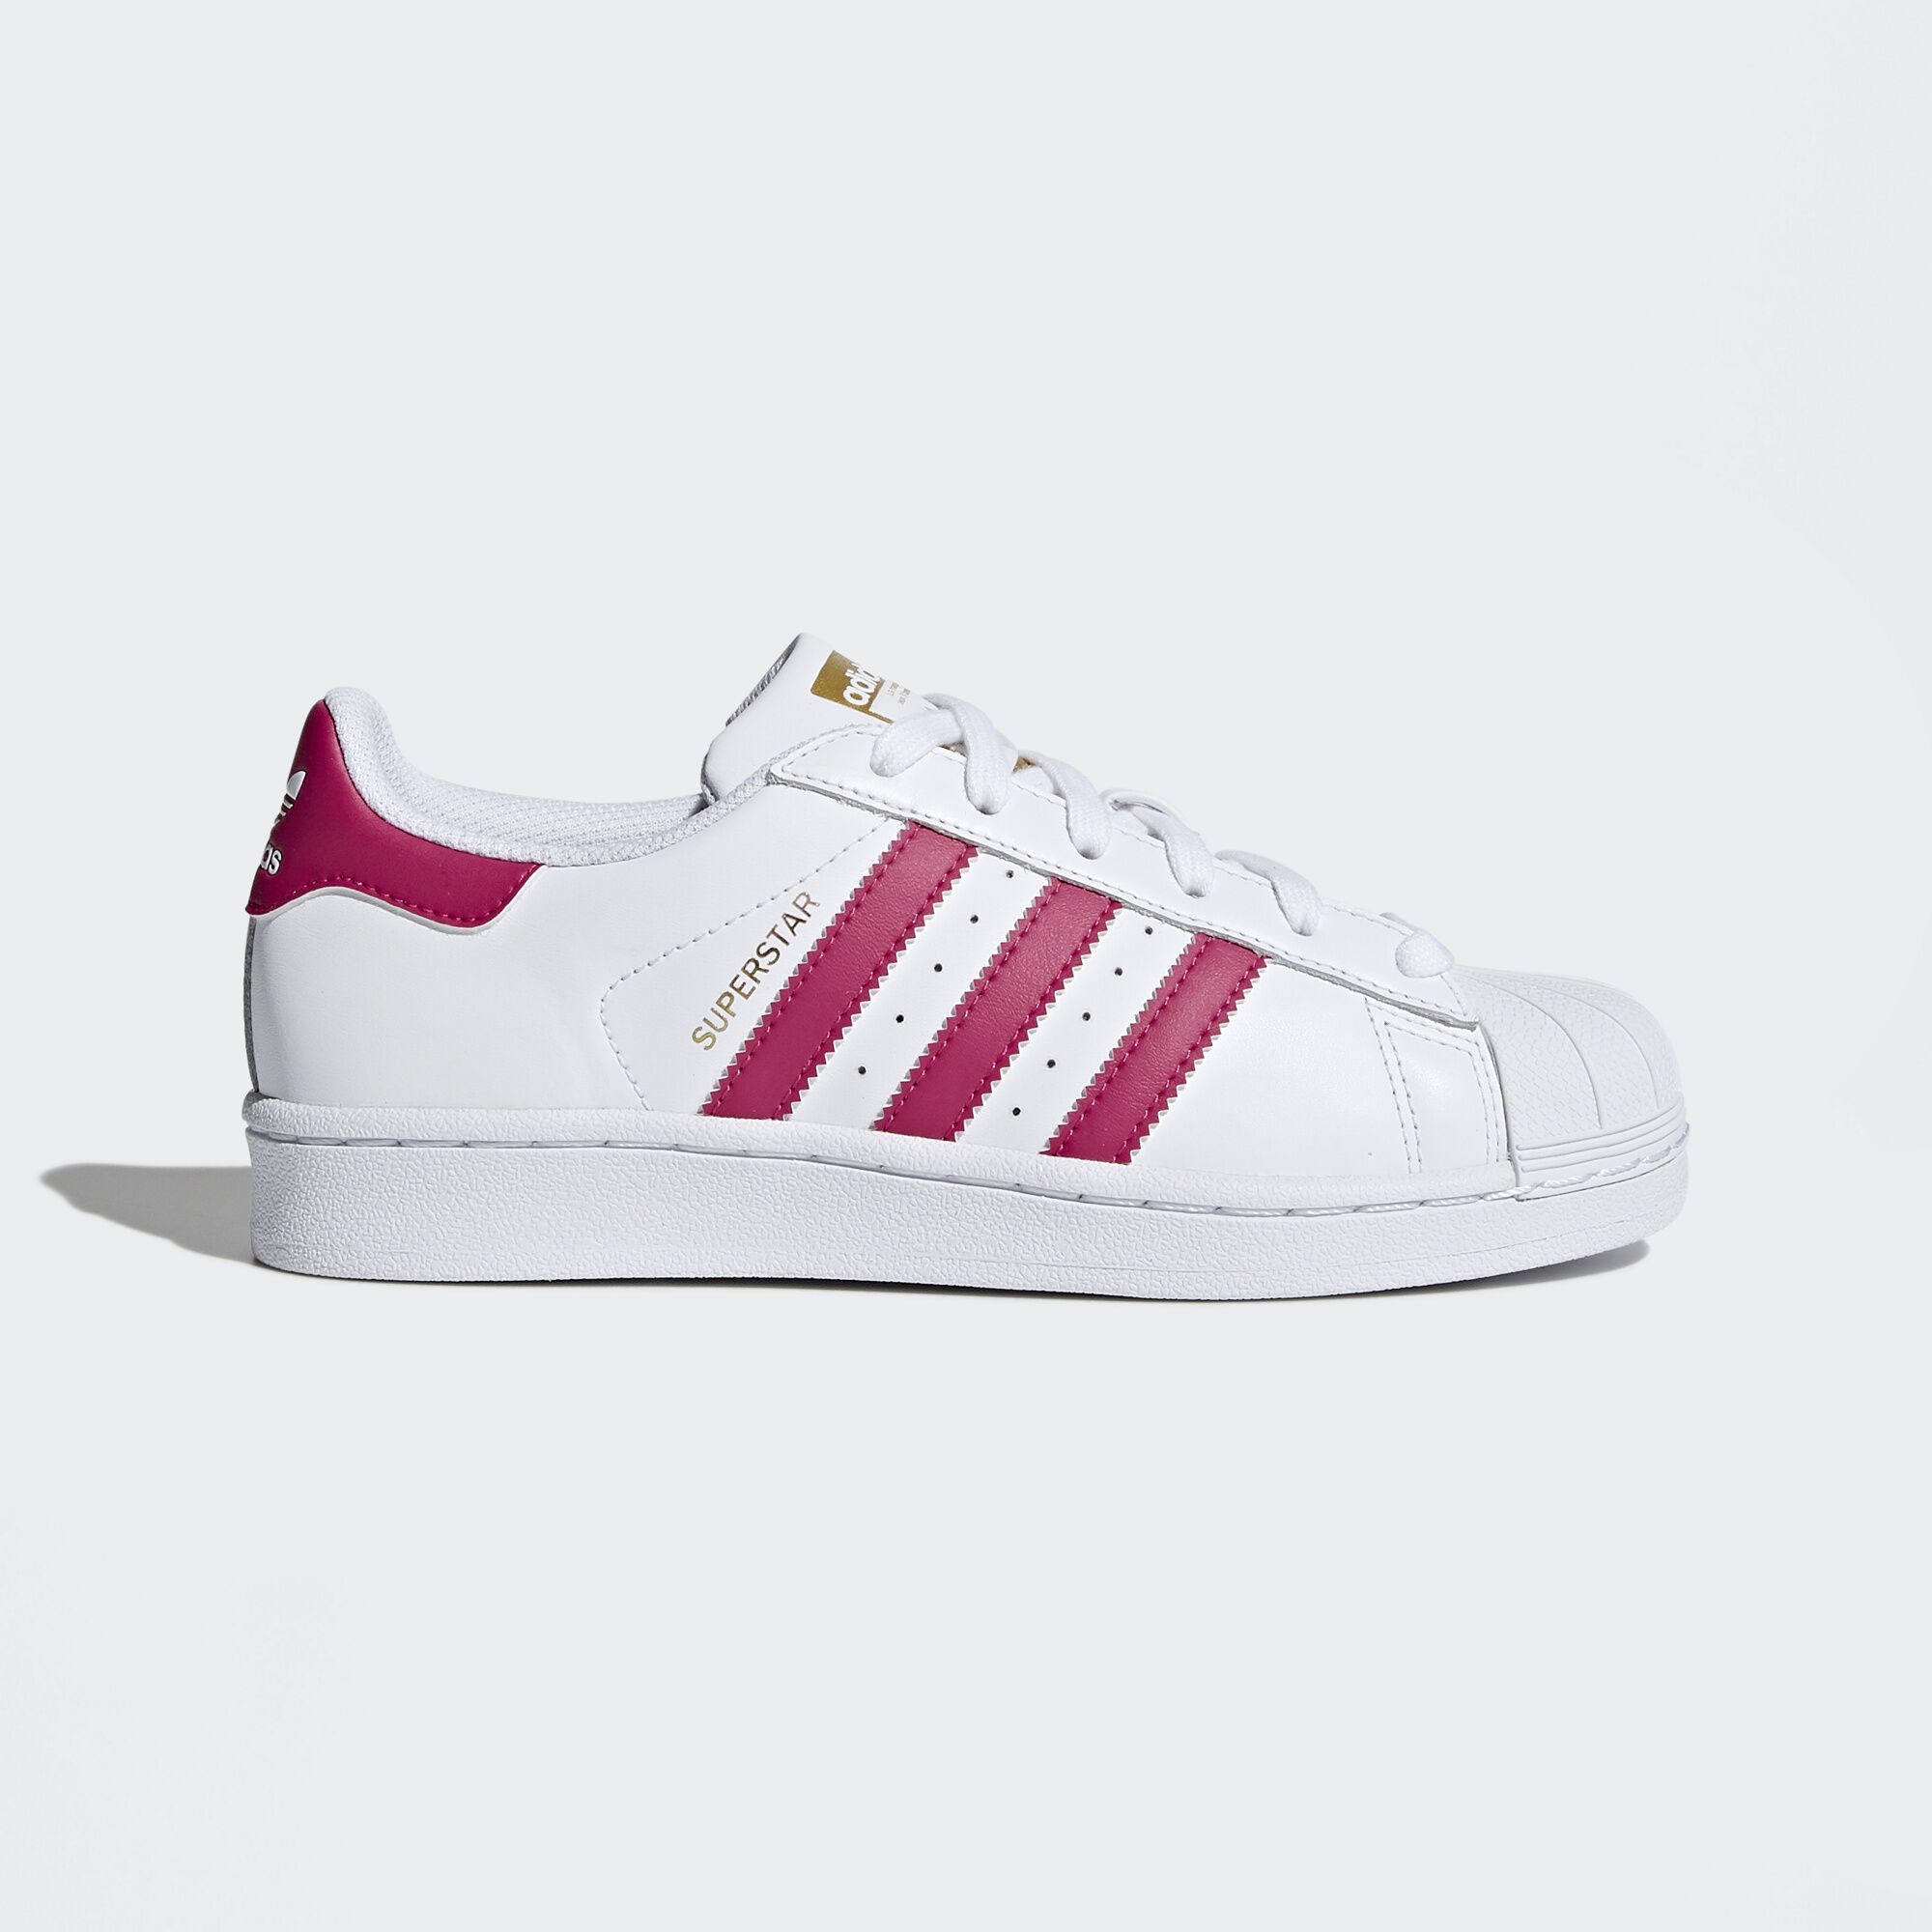 Buy Adidas Originals Superstar Up White Sporty Sneakers for Women